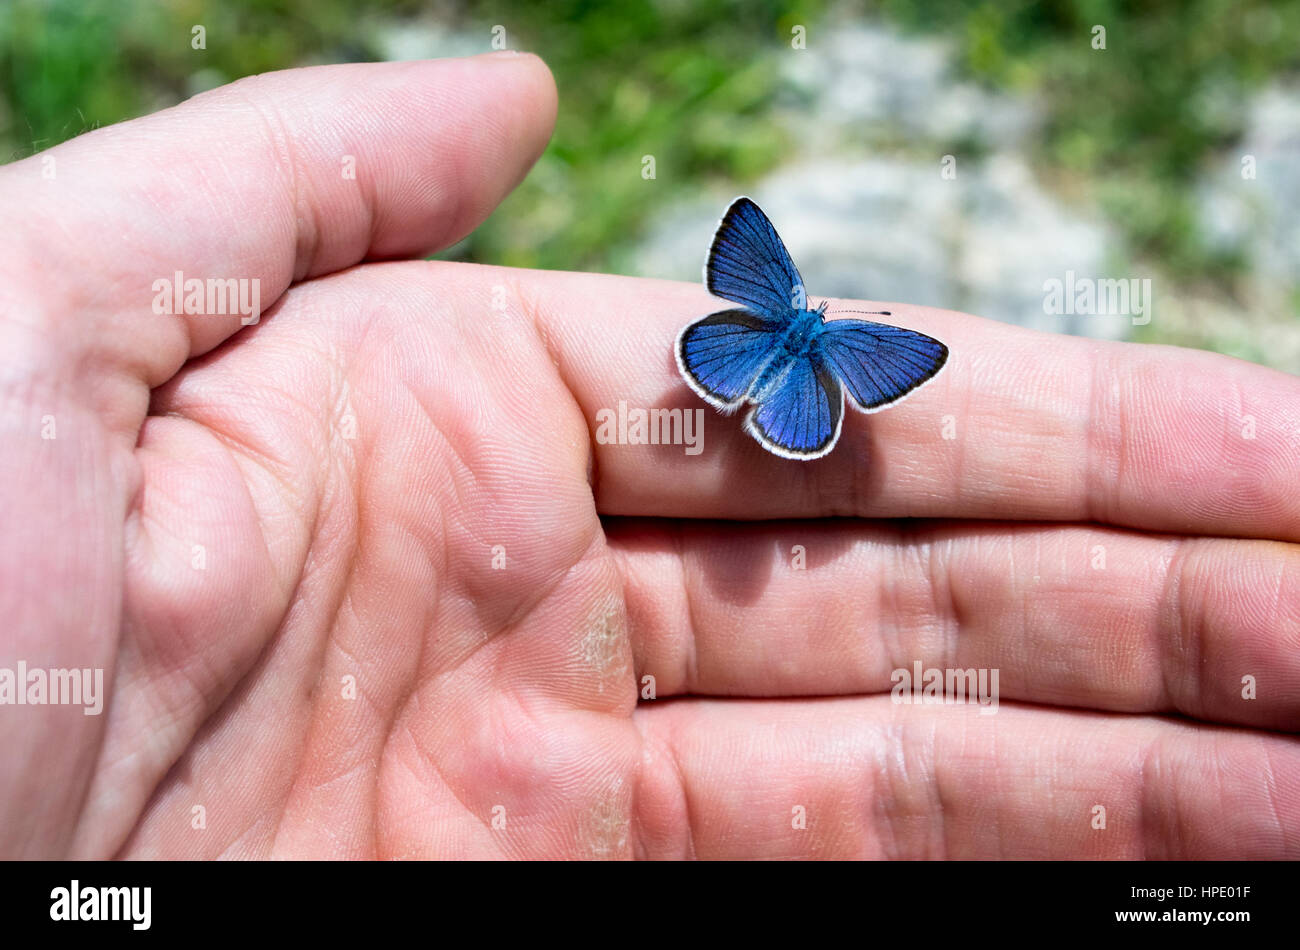 Little blue butterfly resting on a male hand - Stock Image